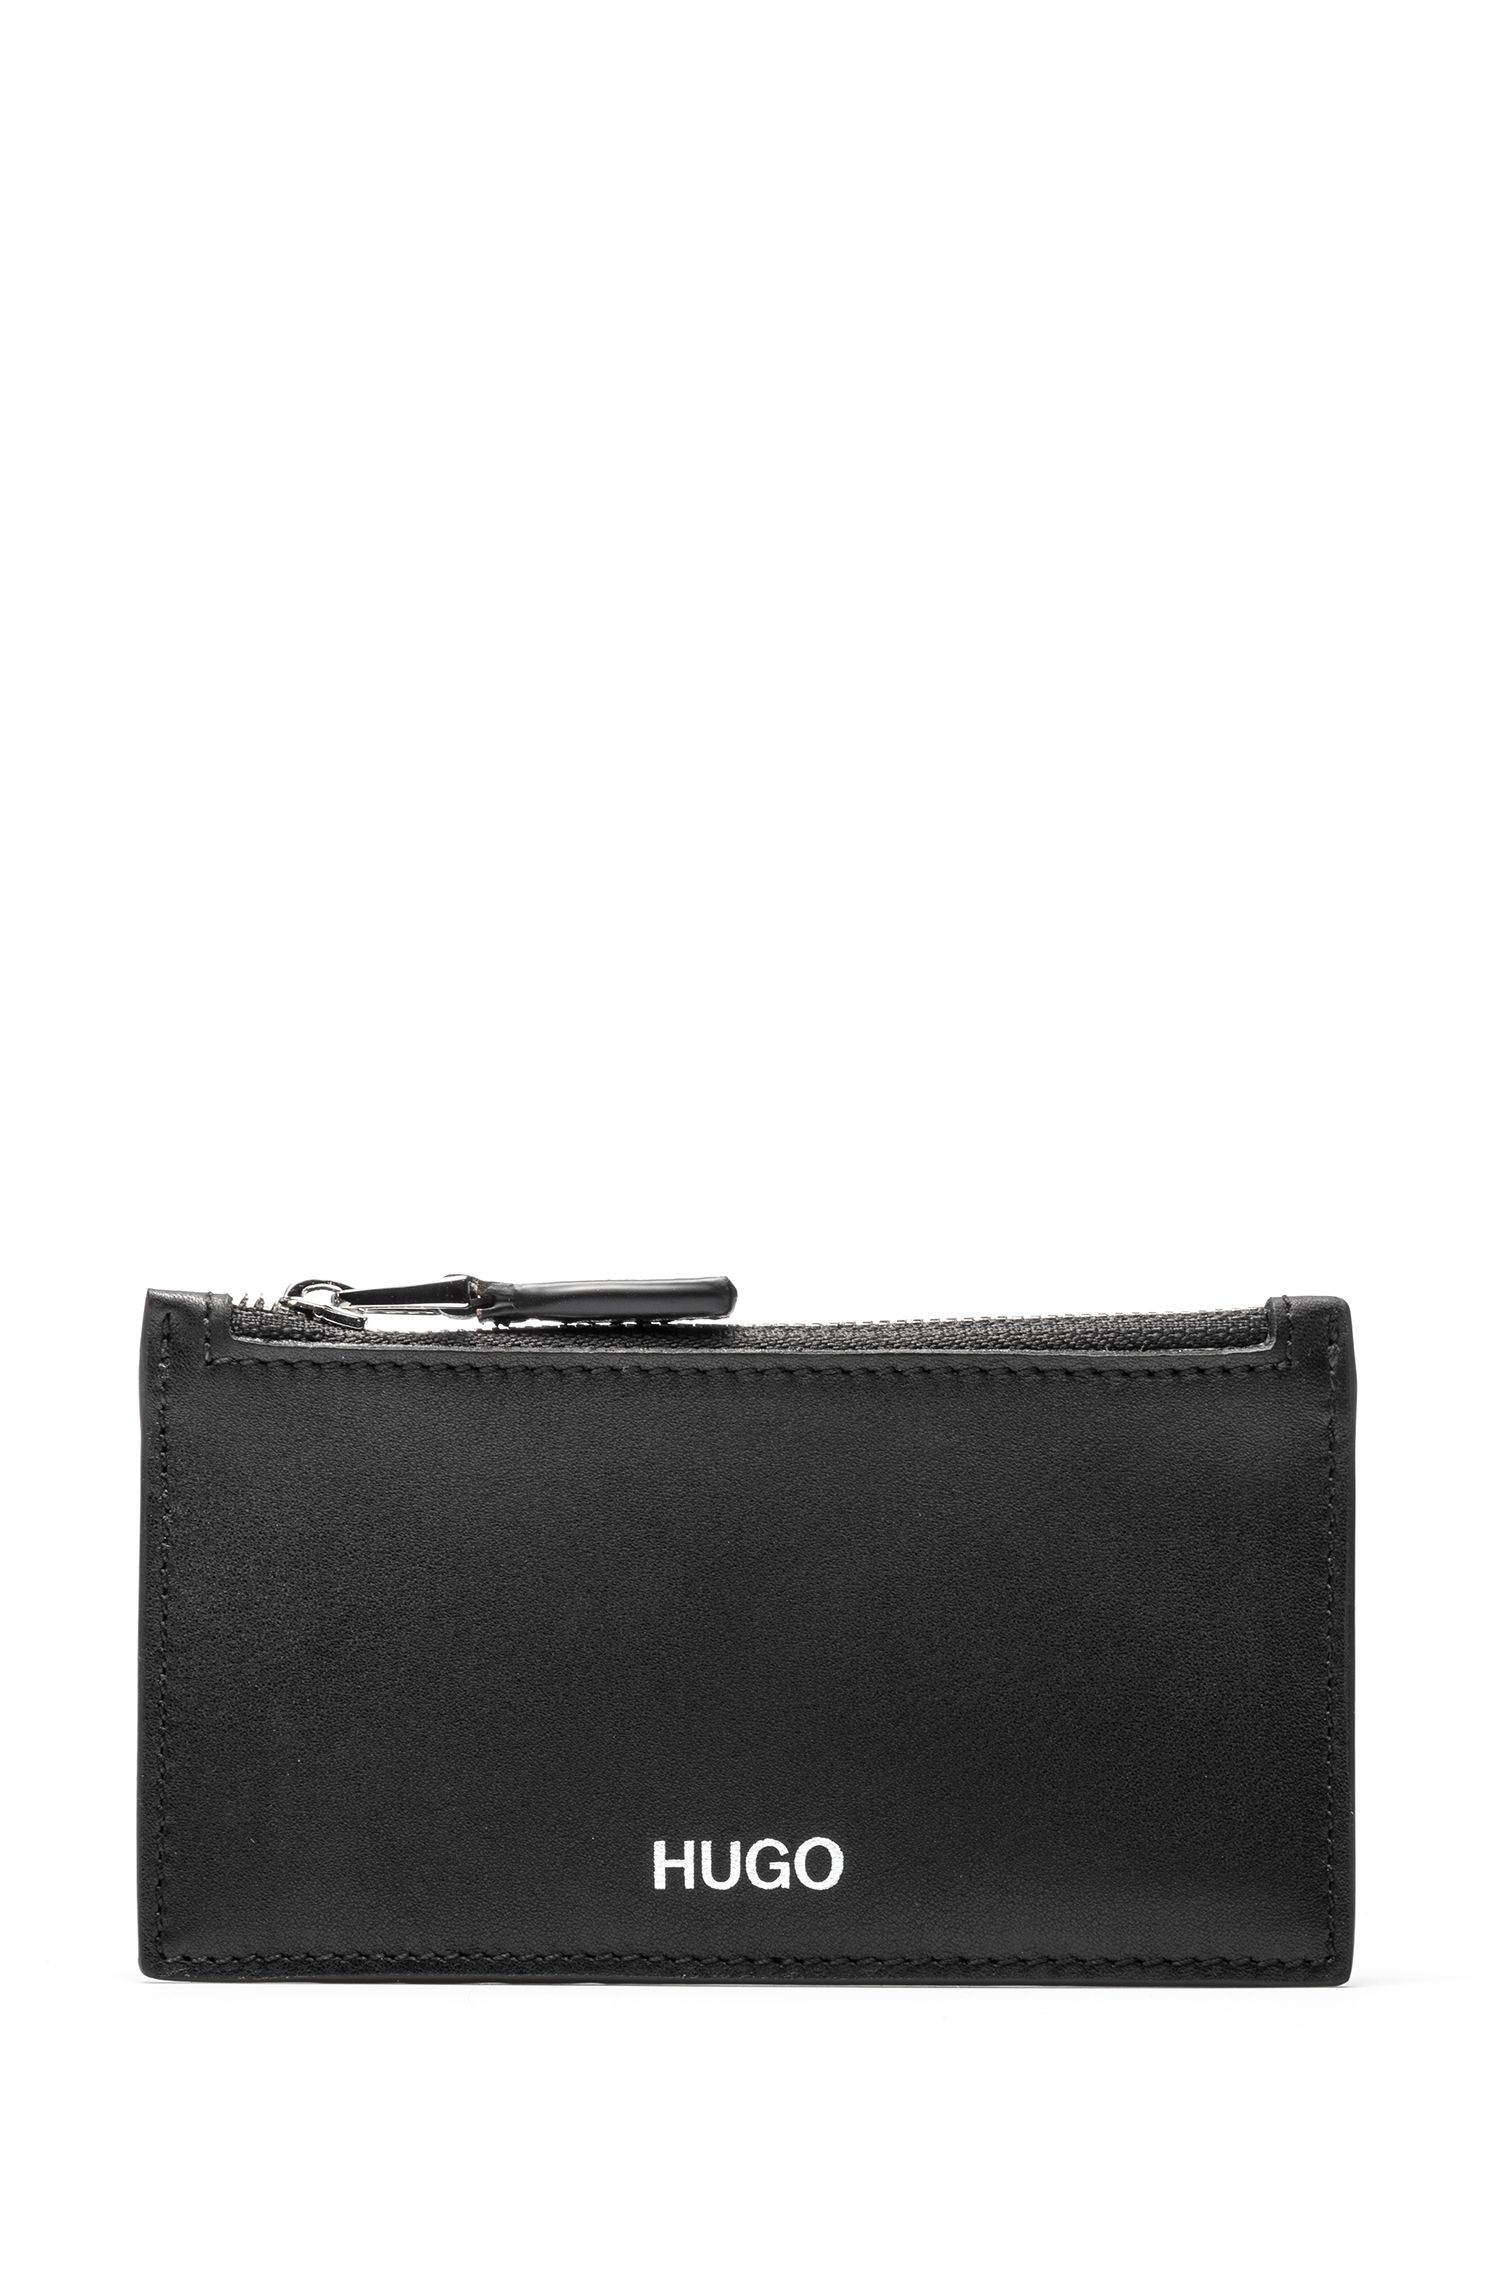 Nappa-leather card holder with zippered coin pocket, Black